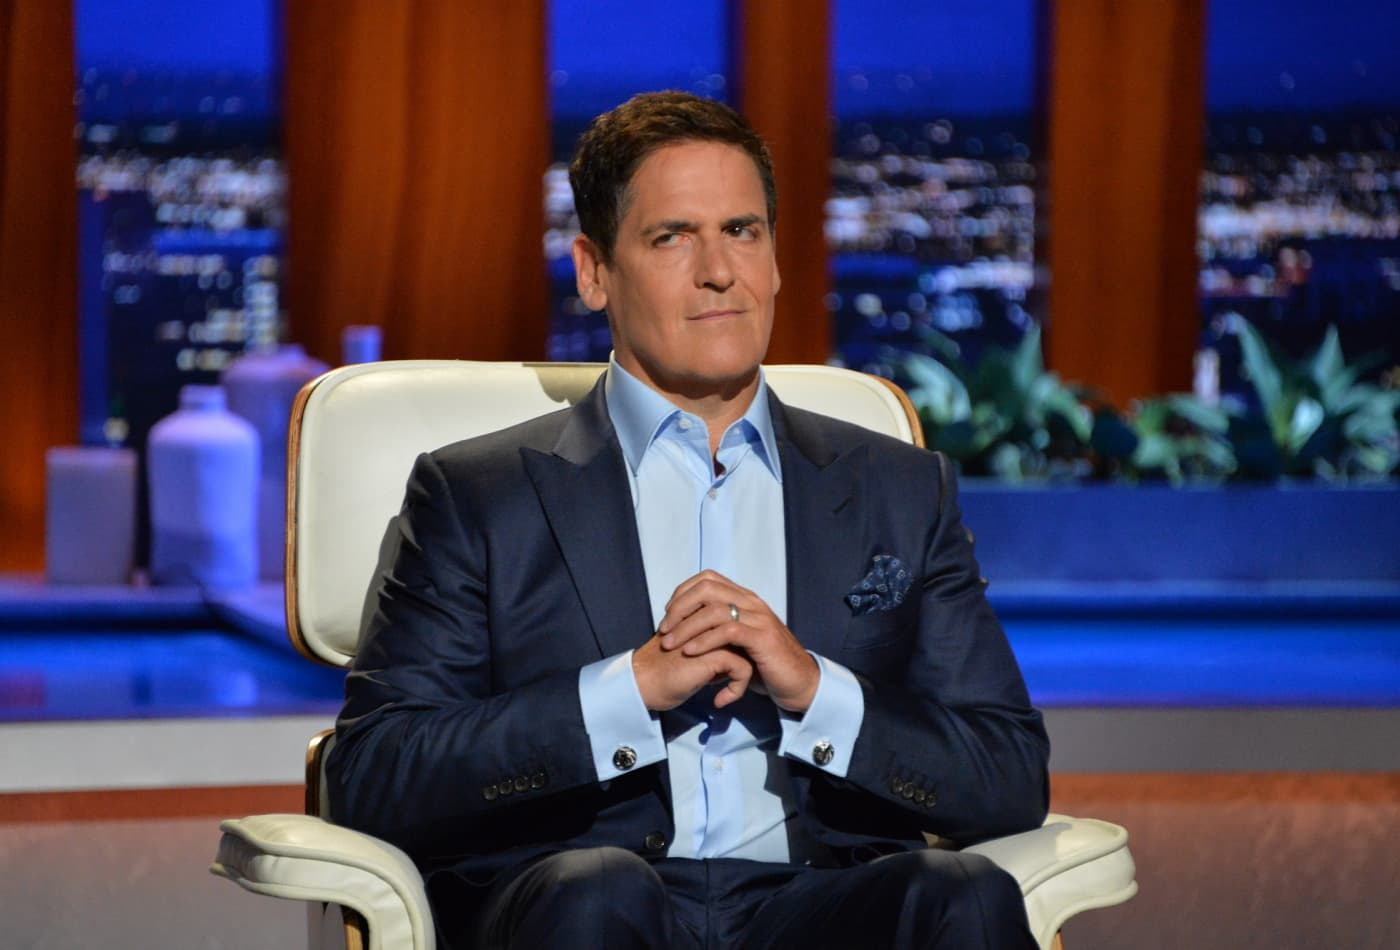 what cryptocurrency is mark cuban investing in